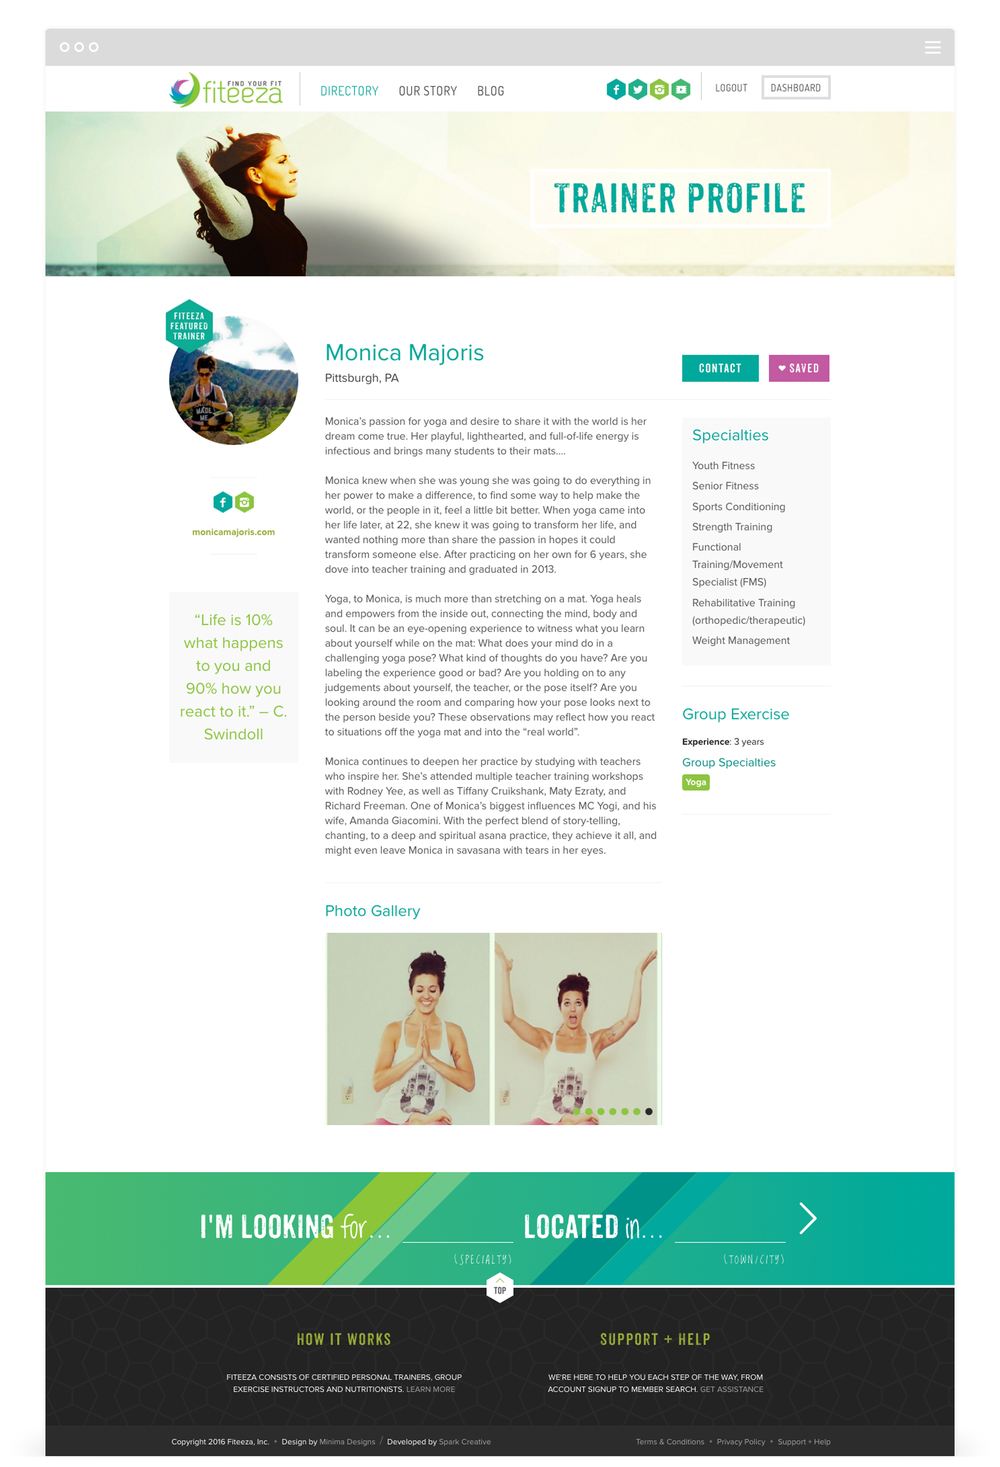 Website Development for Fiteeza by Second + West